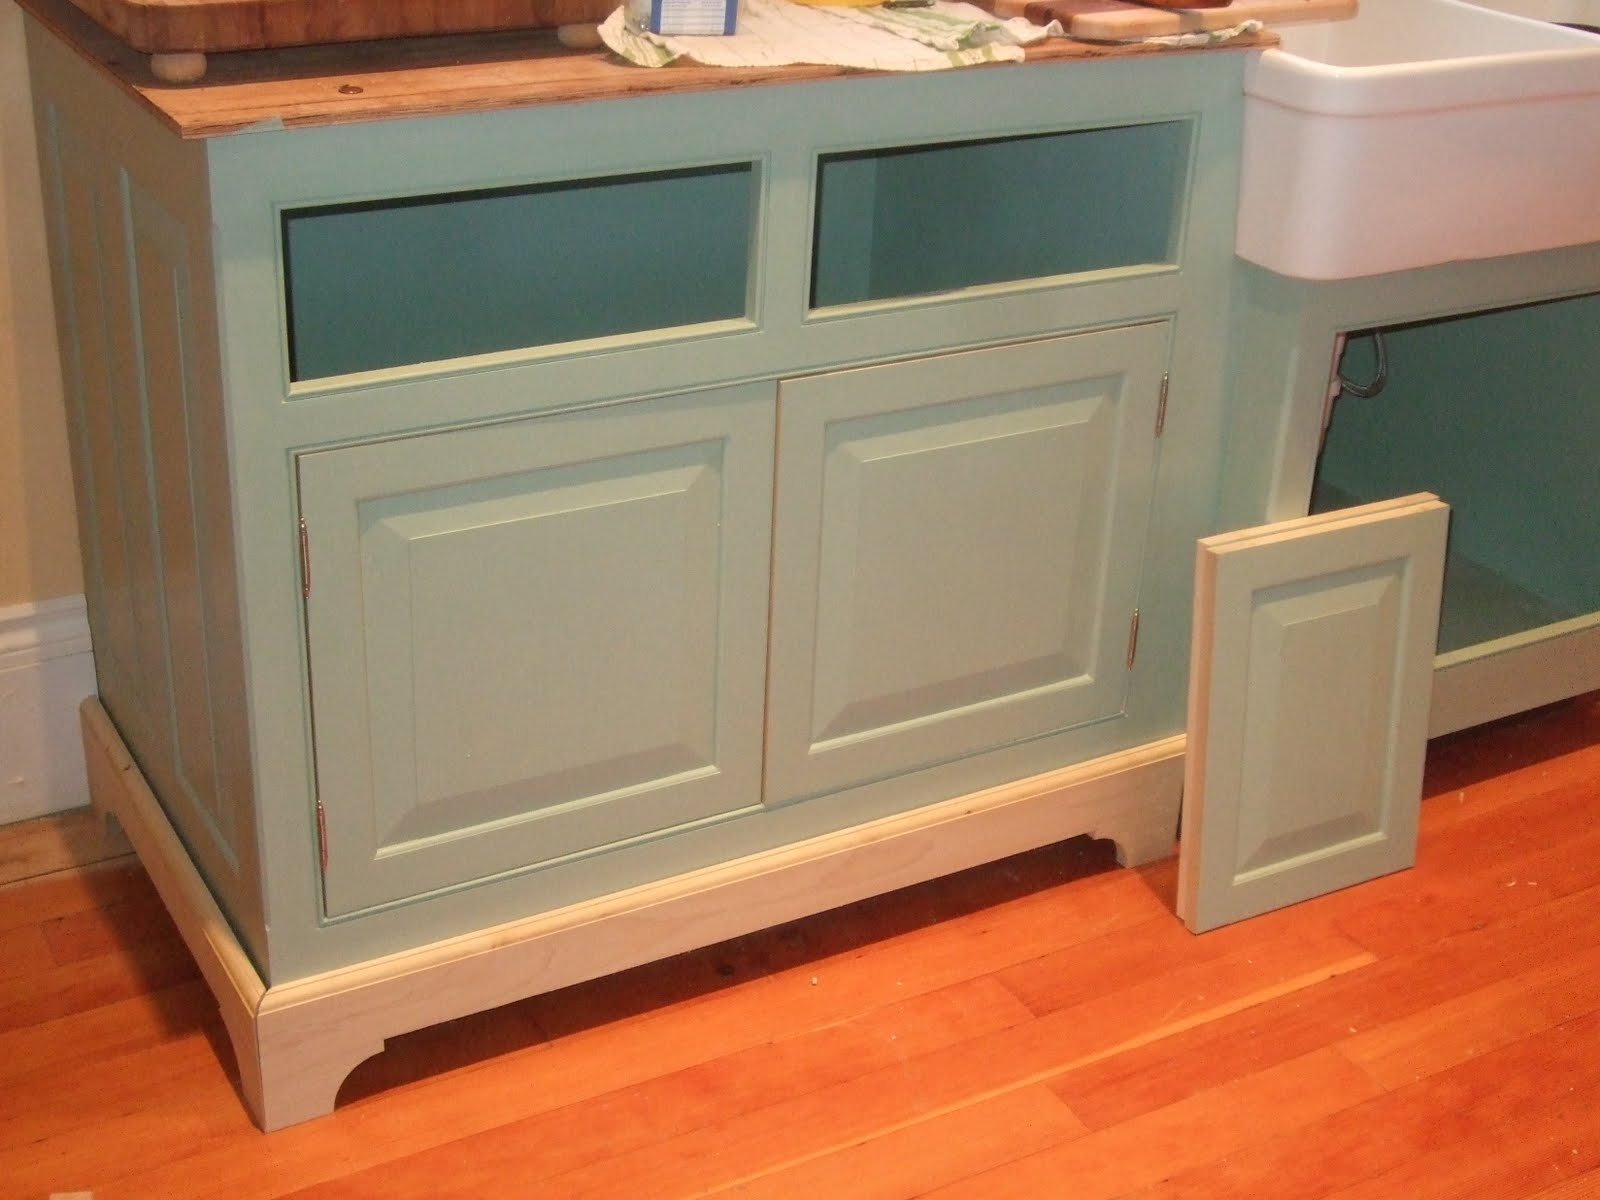 cabinets n bay cabinet dv gray moldings in panel kitchen dishwasher hampton panels kadep end dove b